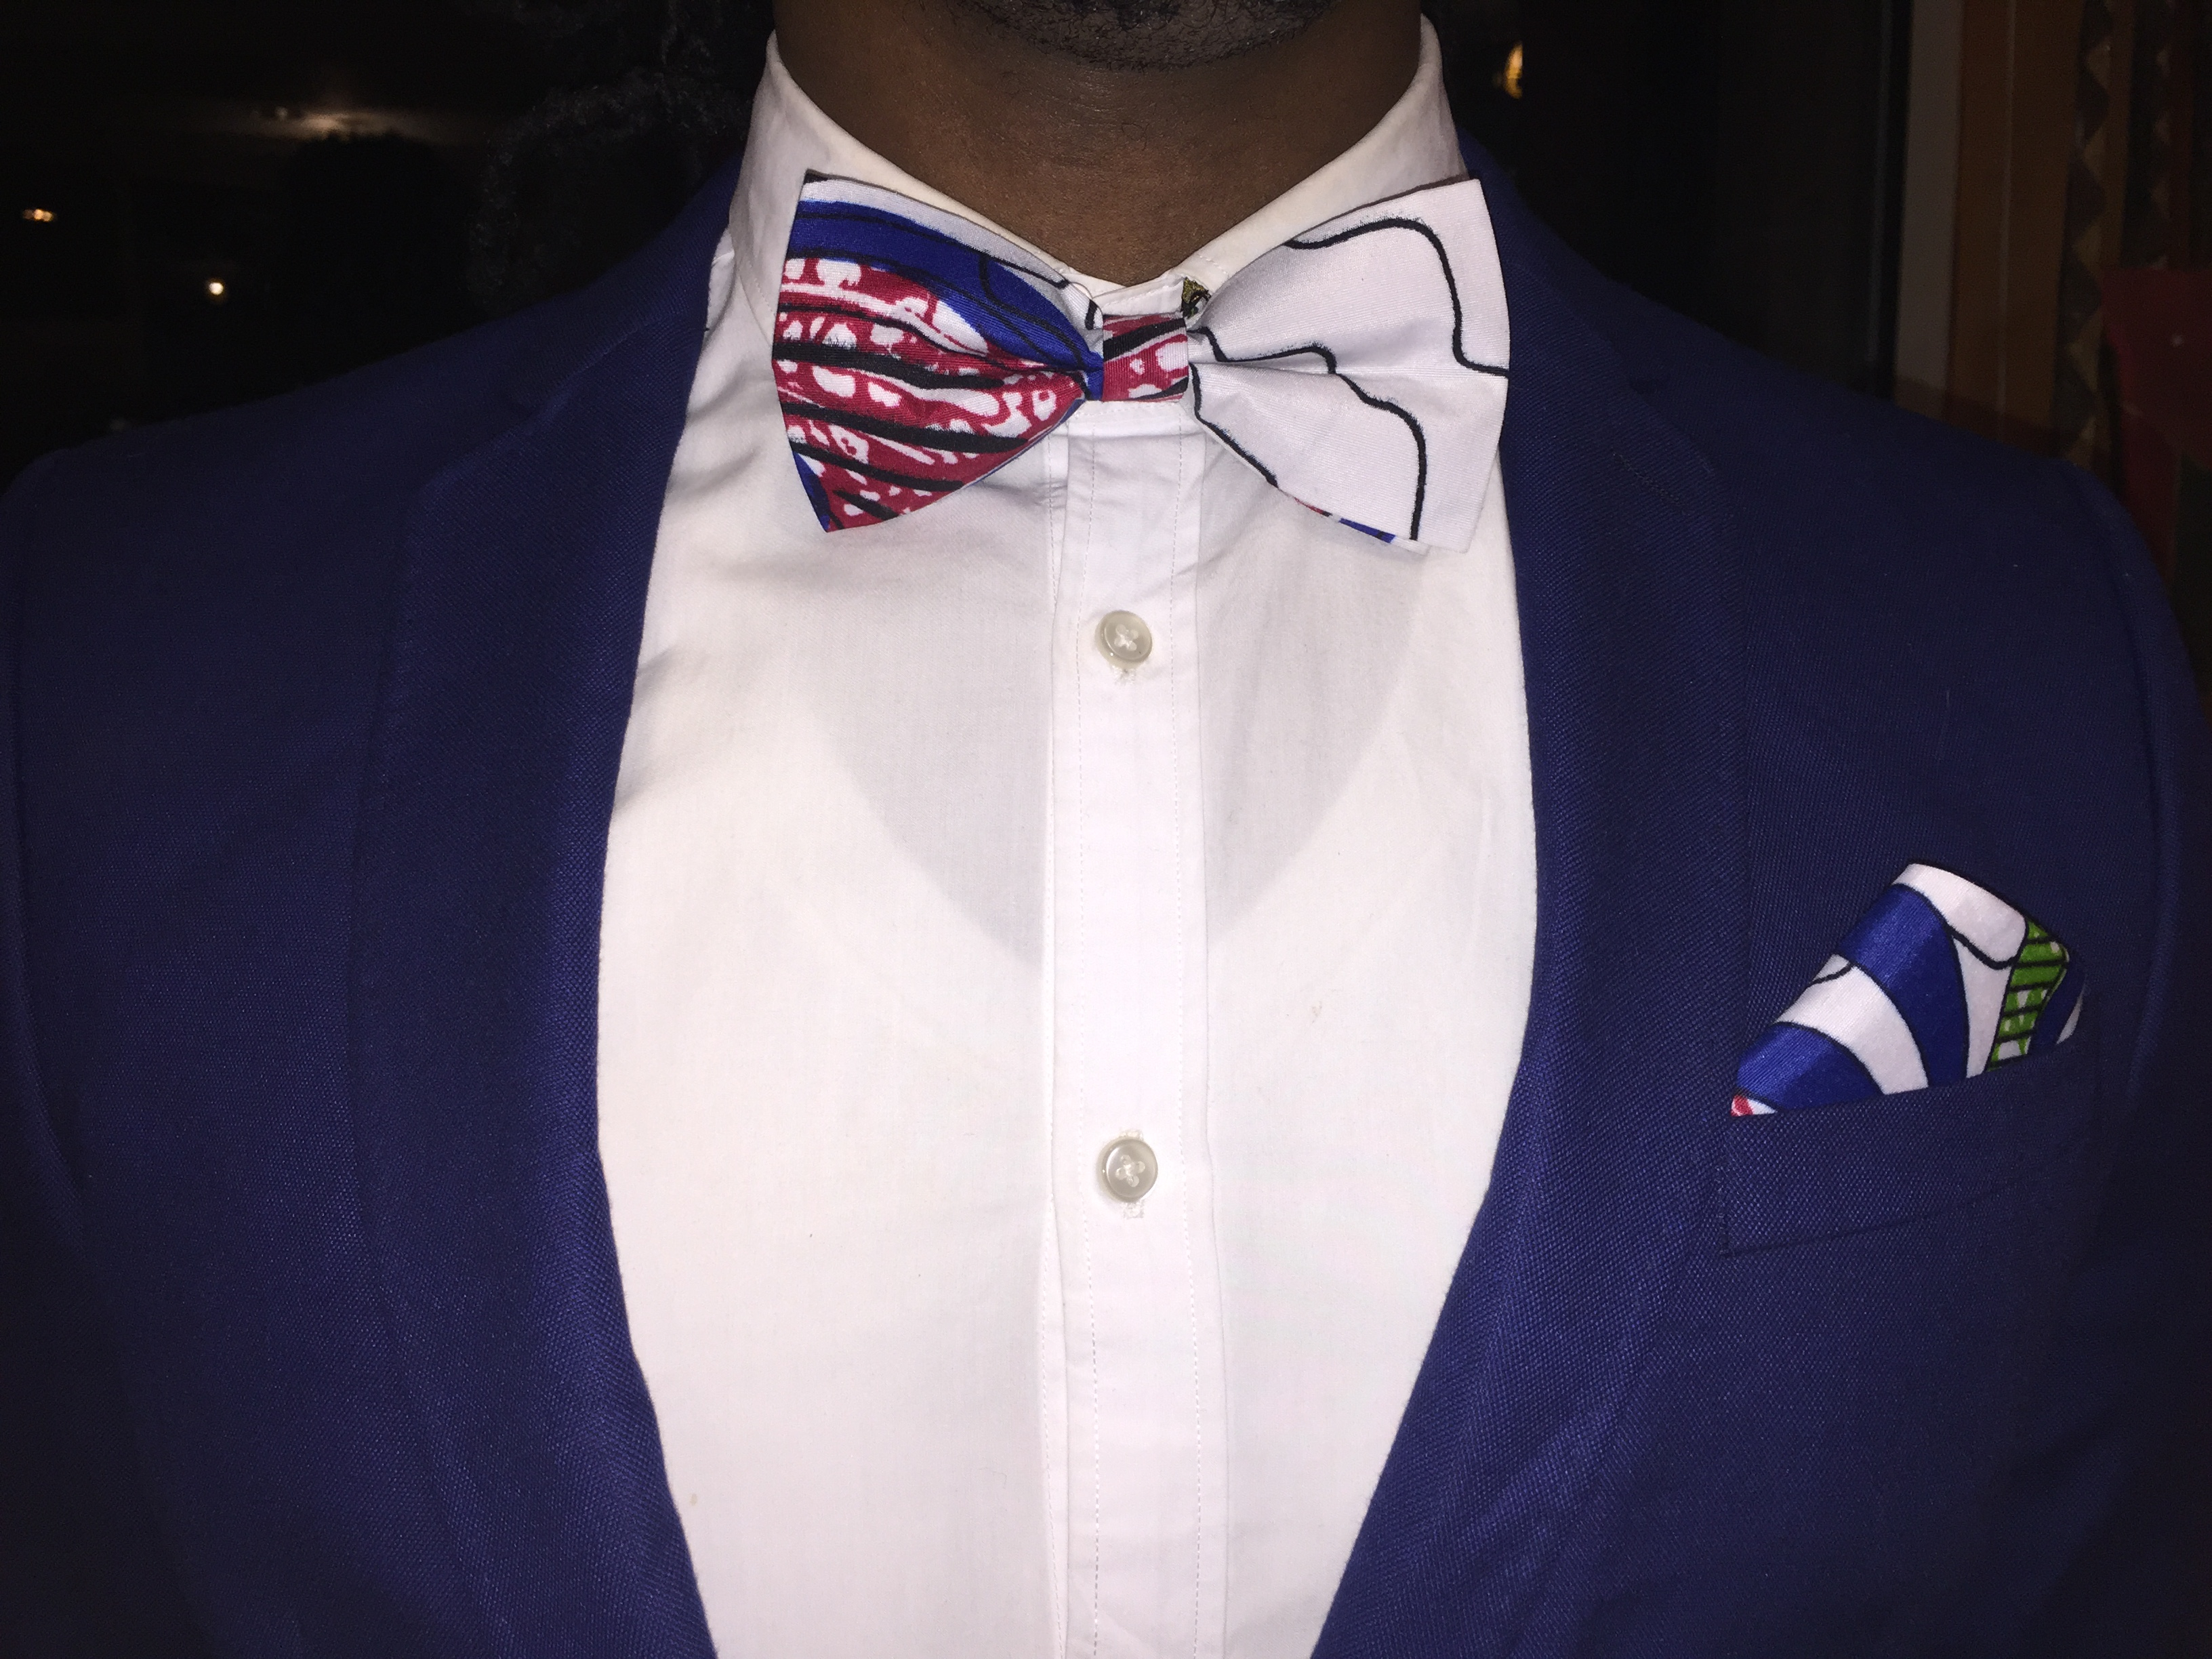 ef22a439a8c3 The Ambassador (Pre-Tied Bow Tie) + Pocket Square – Blue/Red/White ...